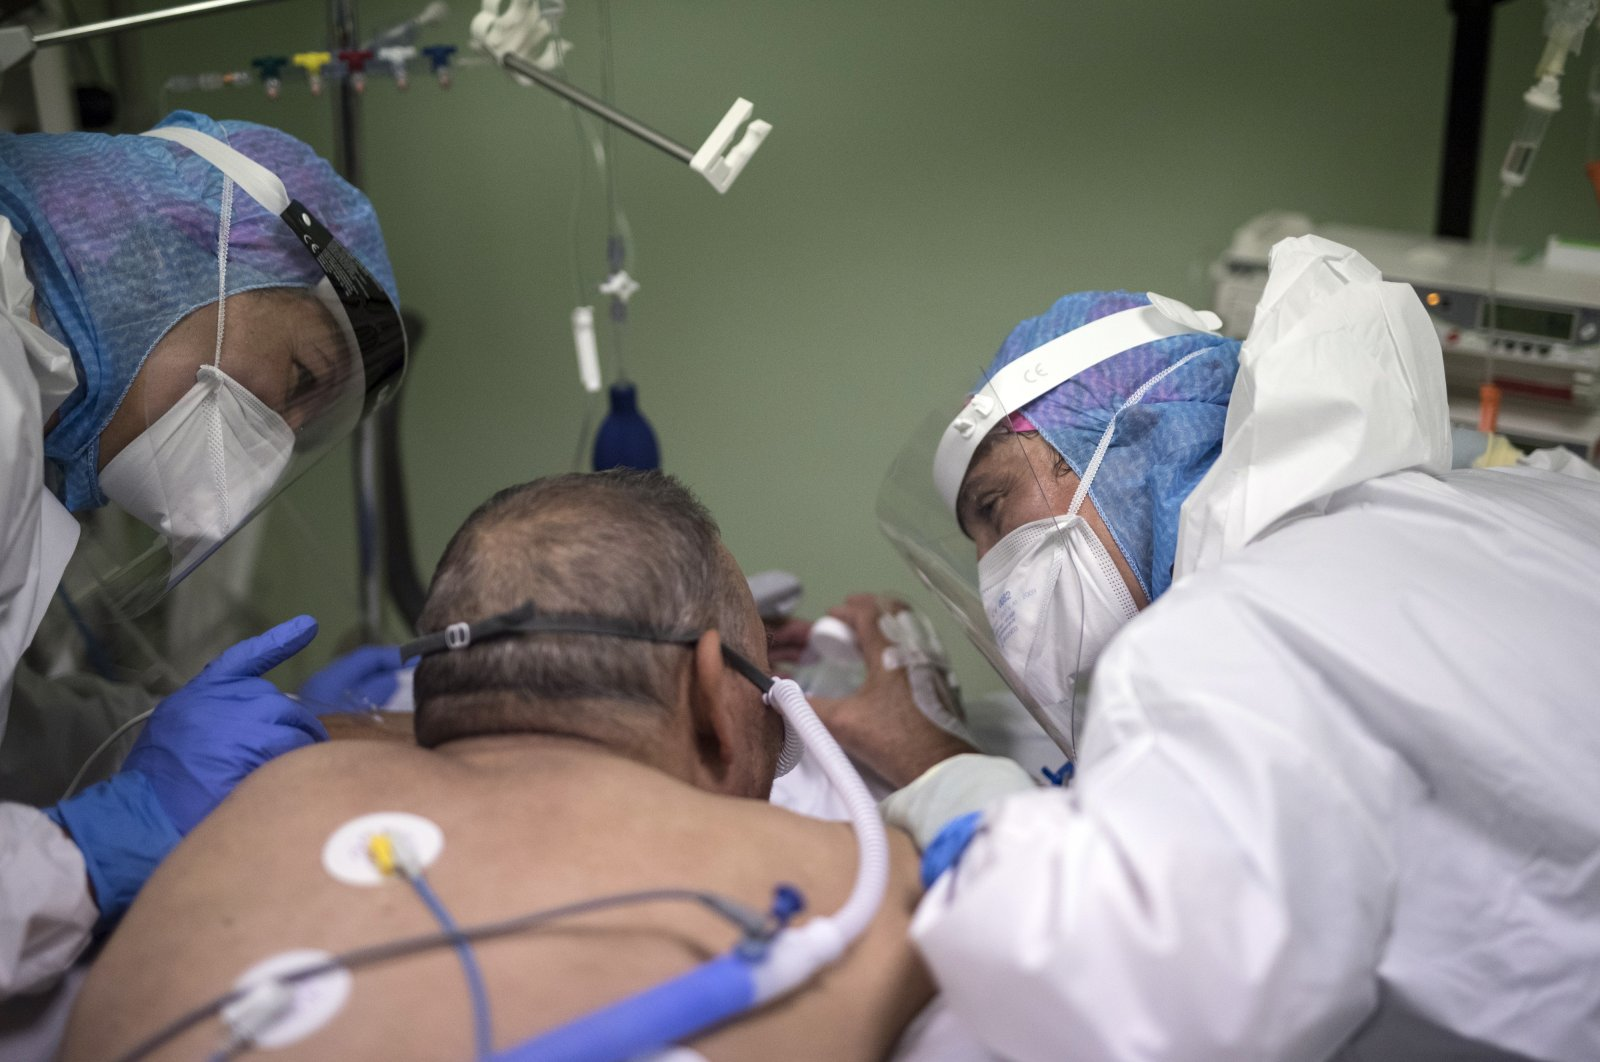 Nurses comfort a COVID-19 patient in the intensive care unit at the Joseph Imbert Hospital Center in Arles, southern France, Oct. 28, 2020. (AP Photo)